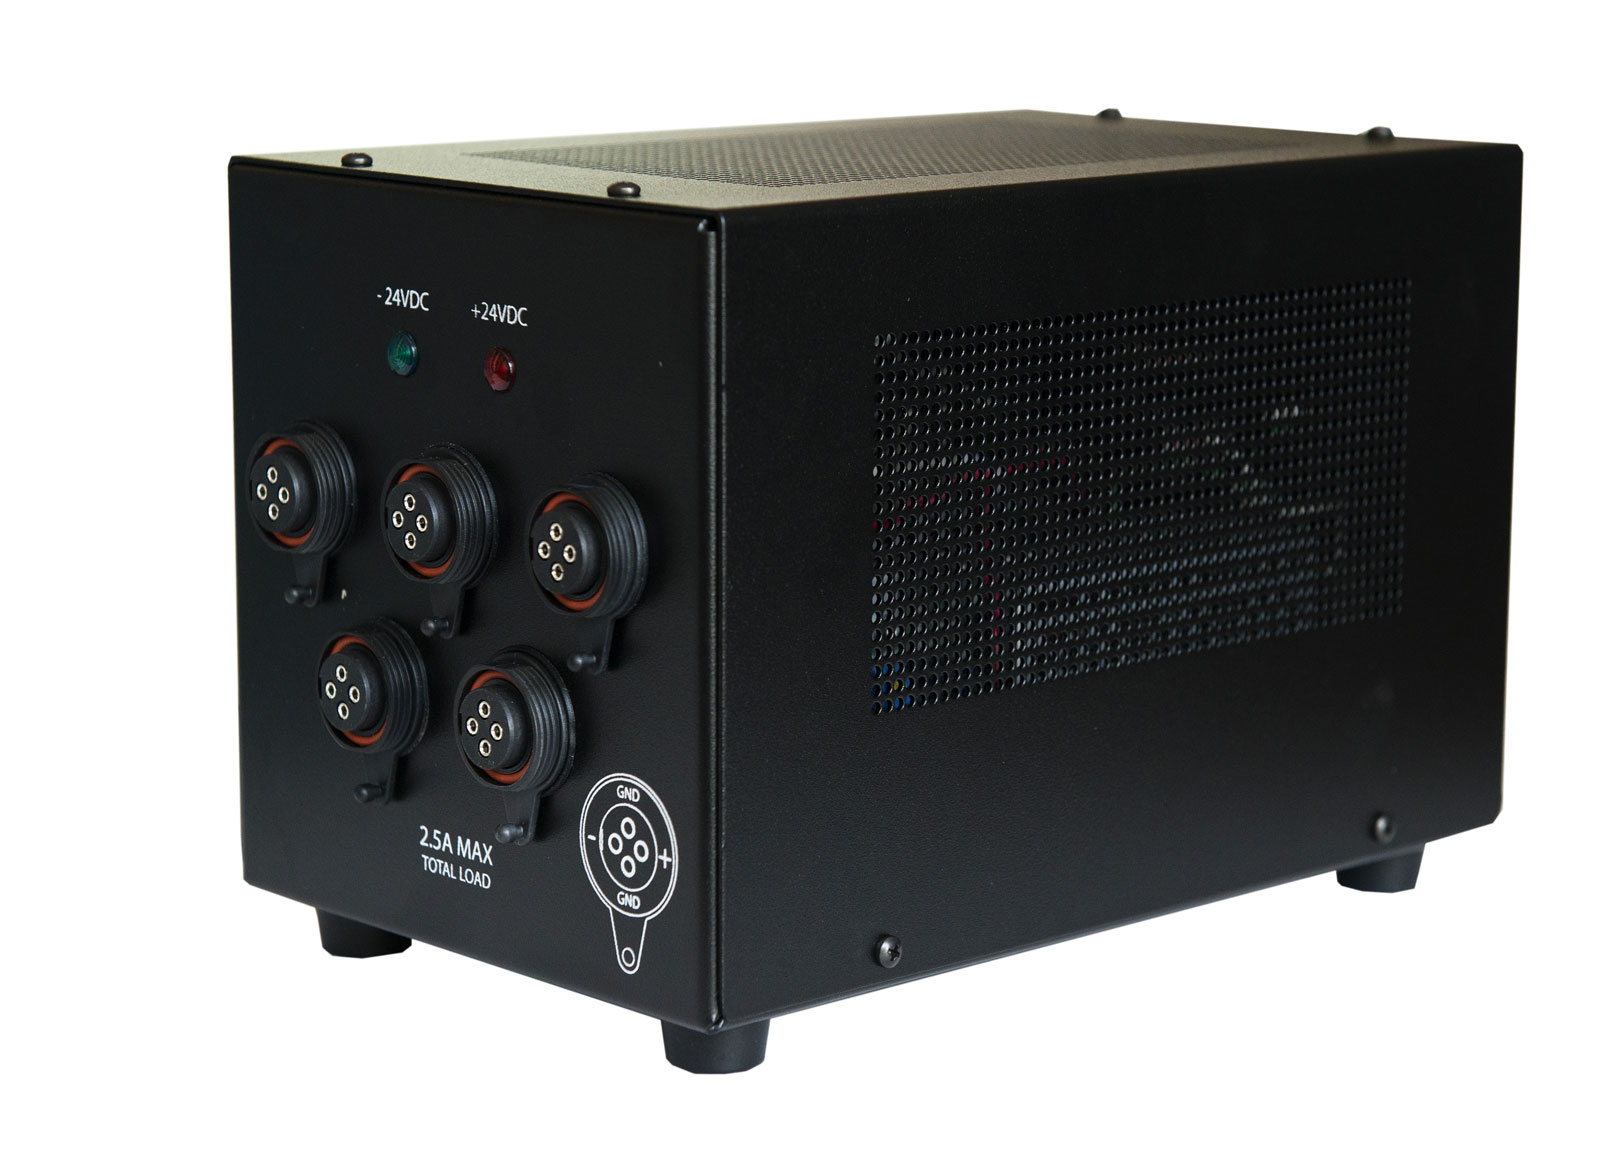 SHELFORD SERIES - 5 MODULES POWER SUPPLY